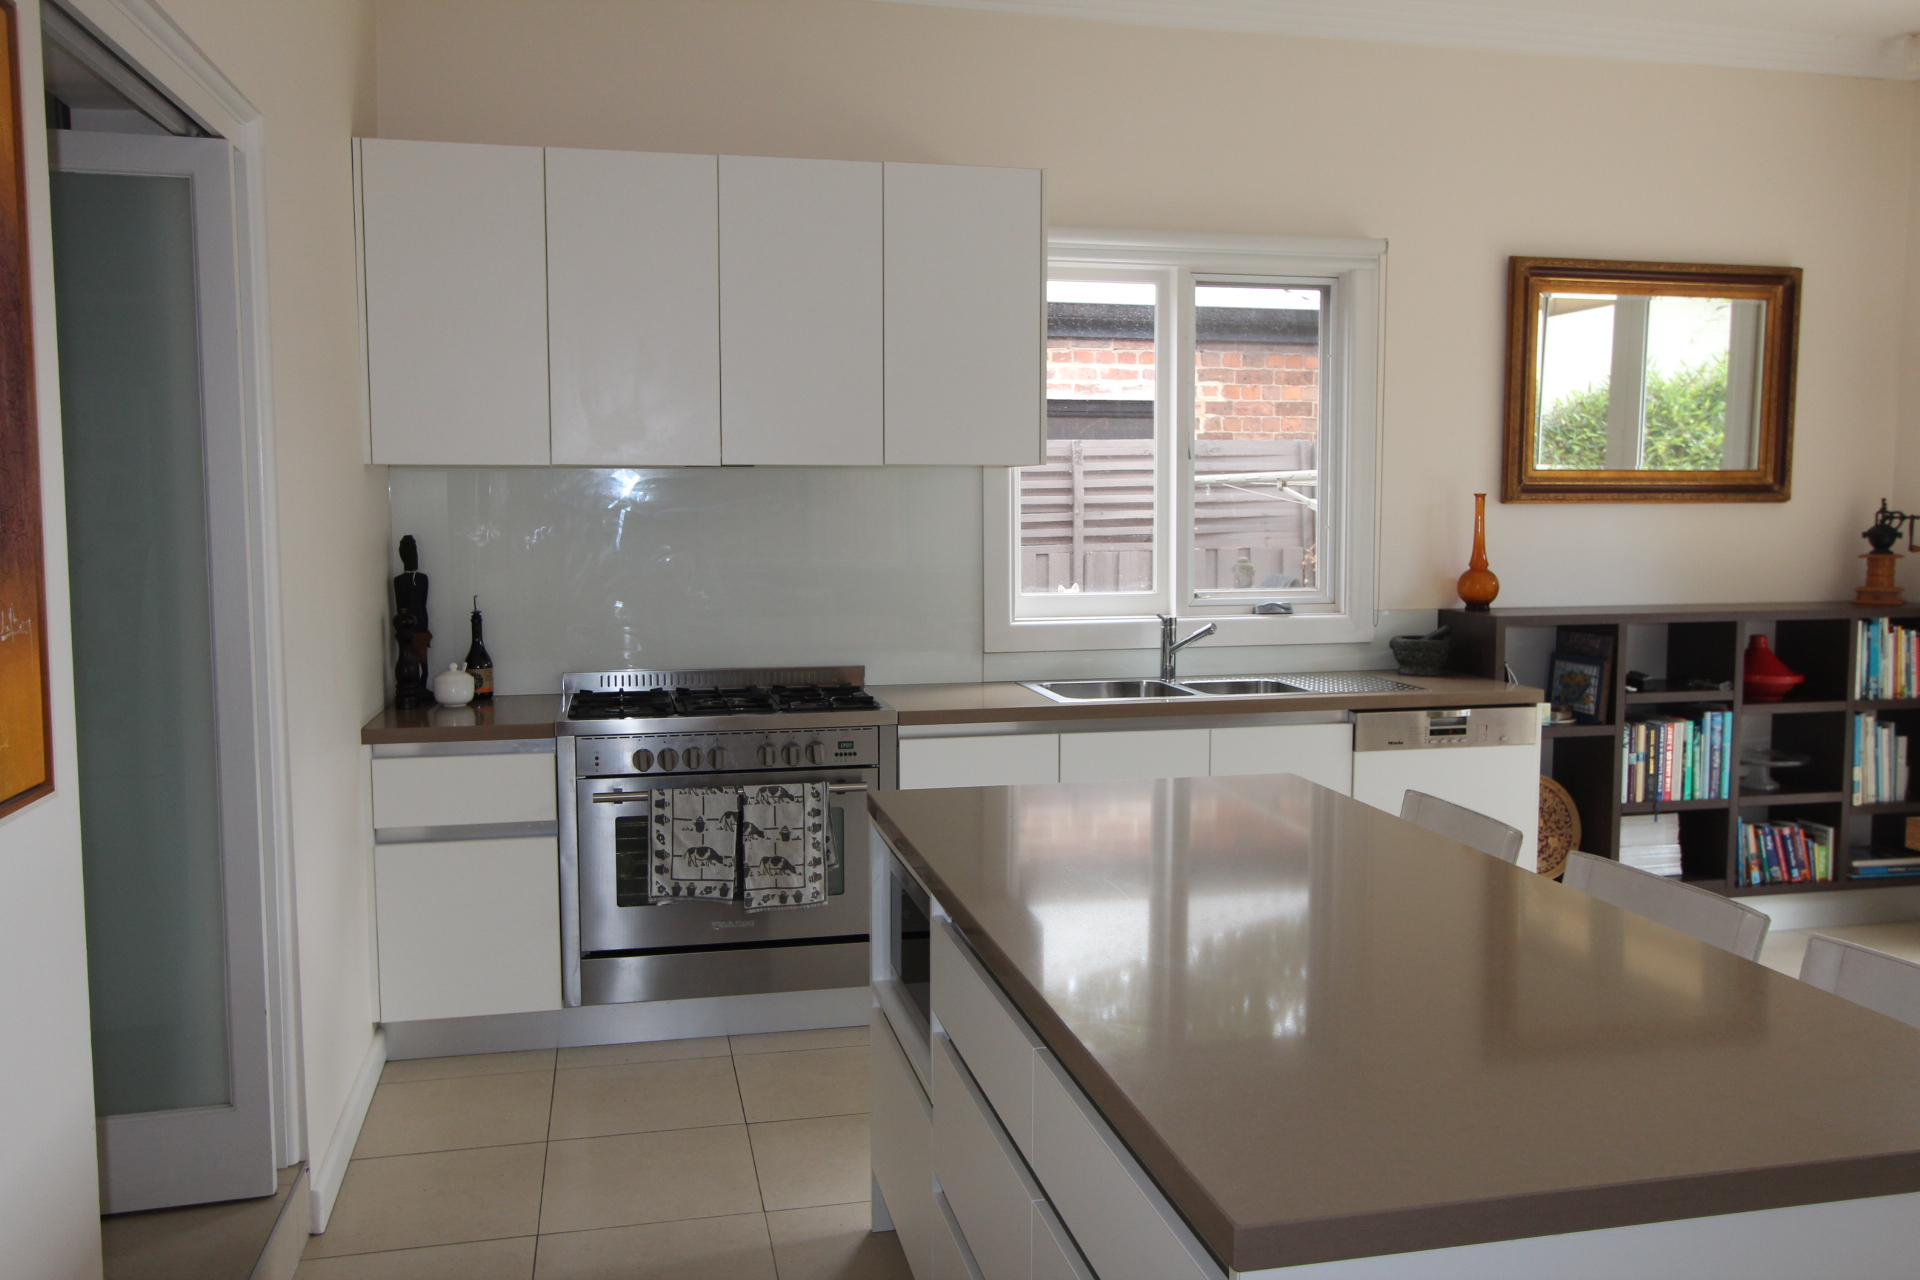 CHARMING FURNISHED HOME IN THE HEART OF KENSINGTON- 6 MONTHS LEASE